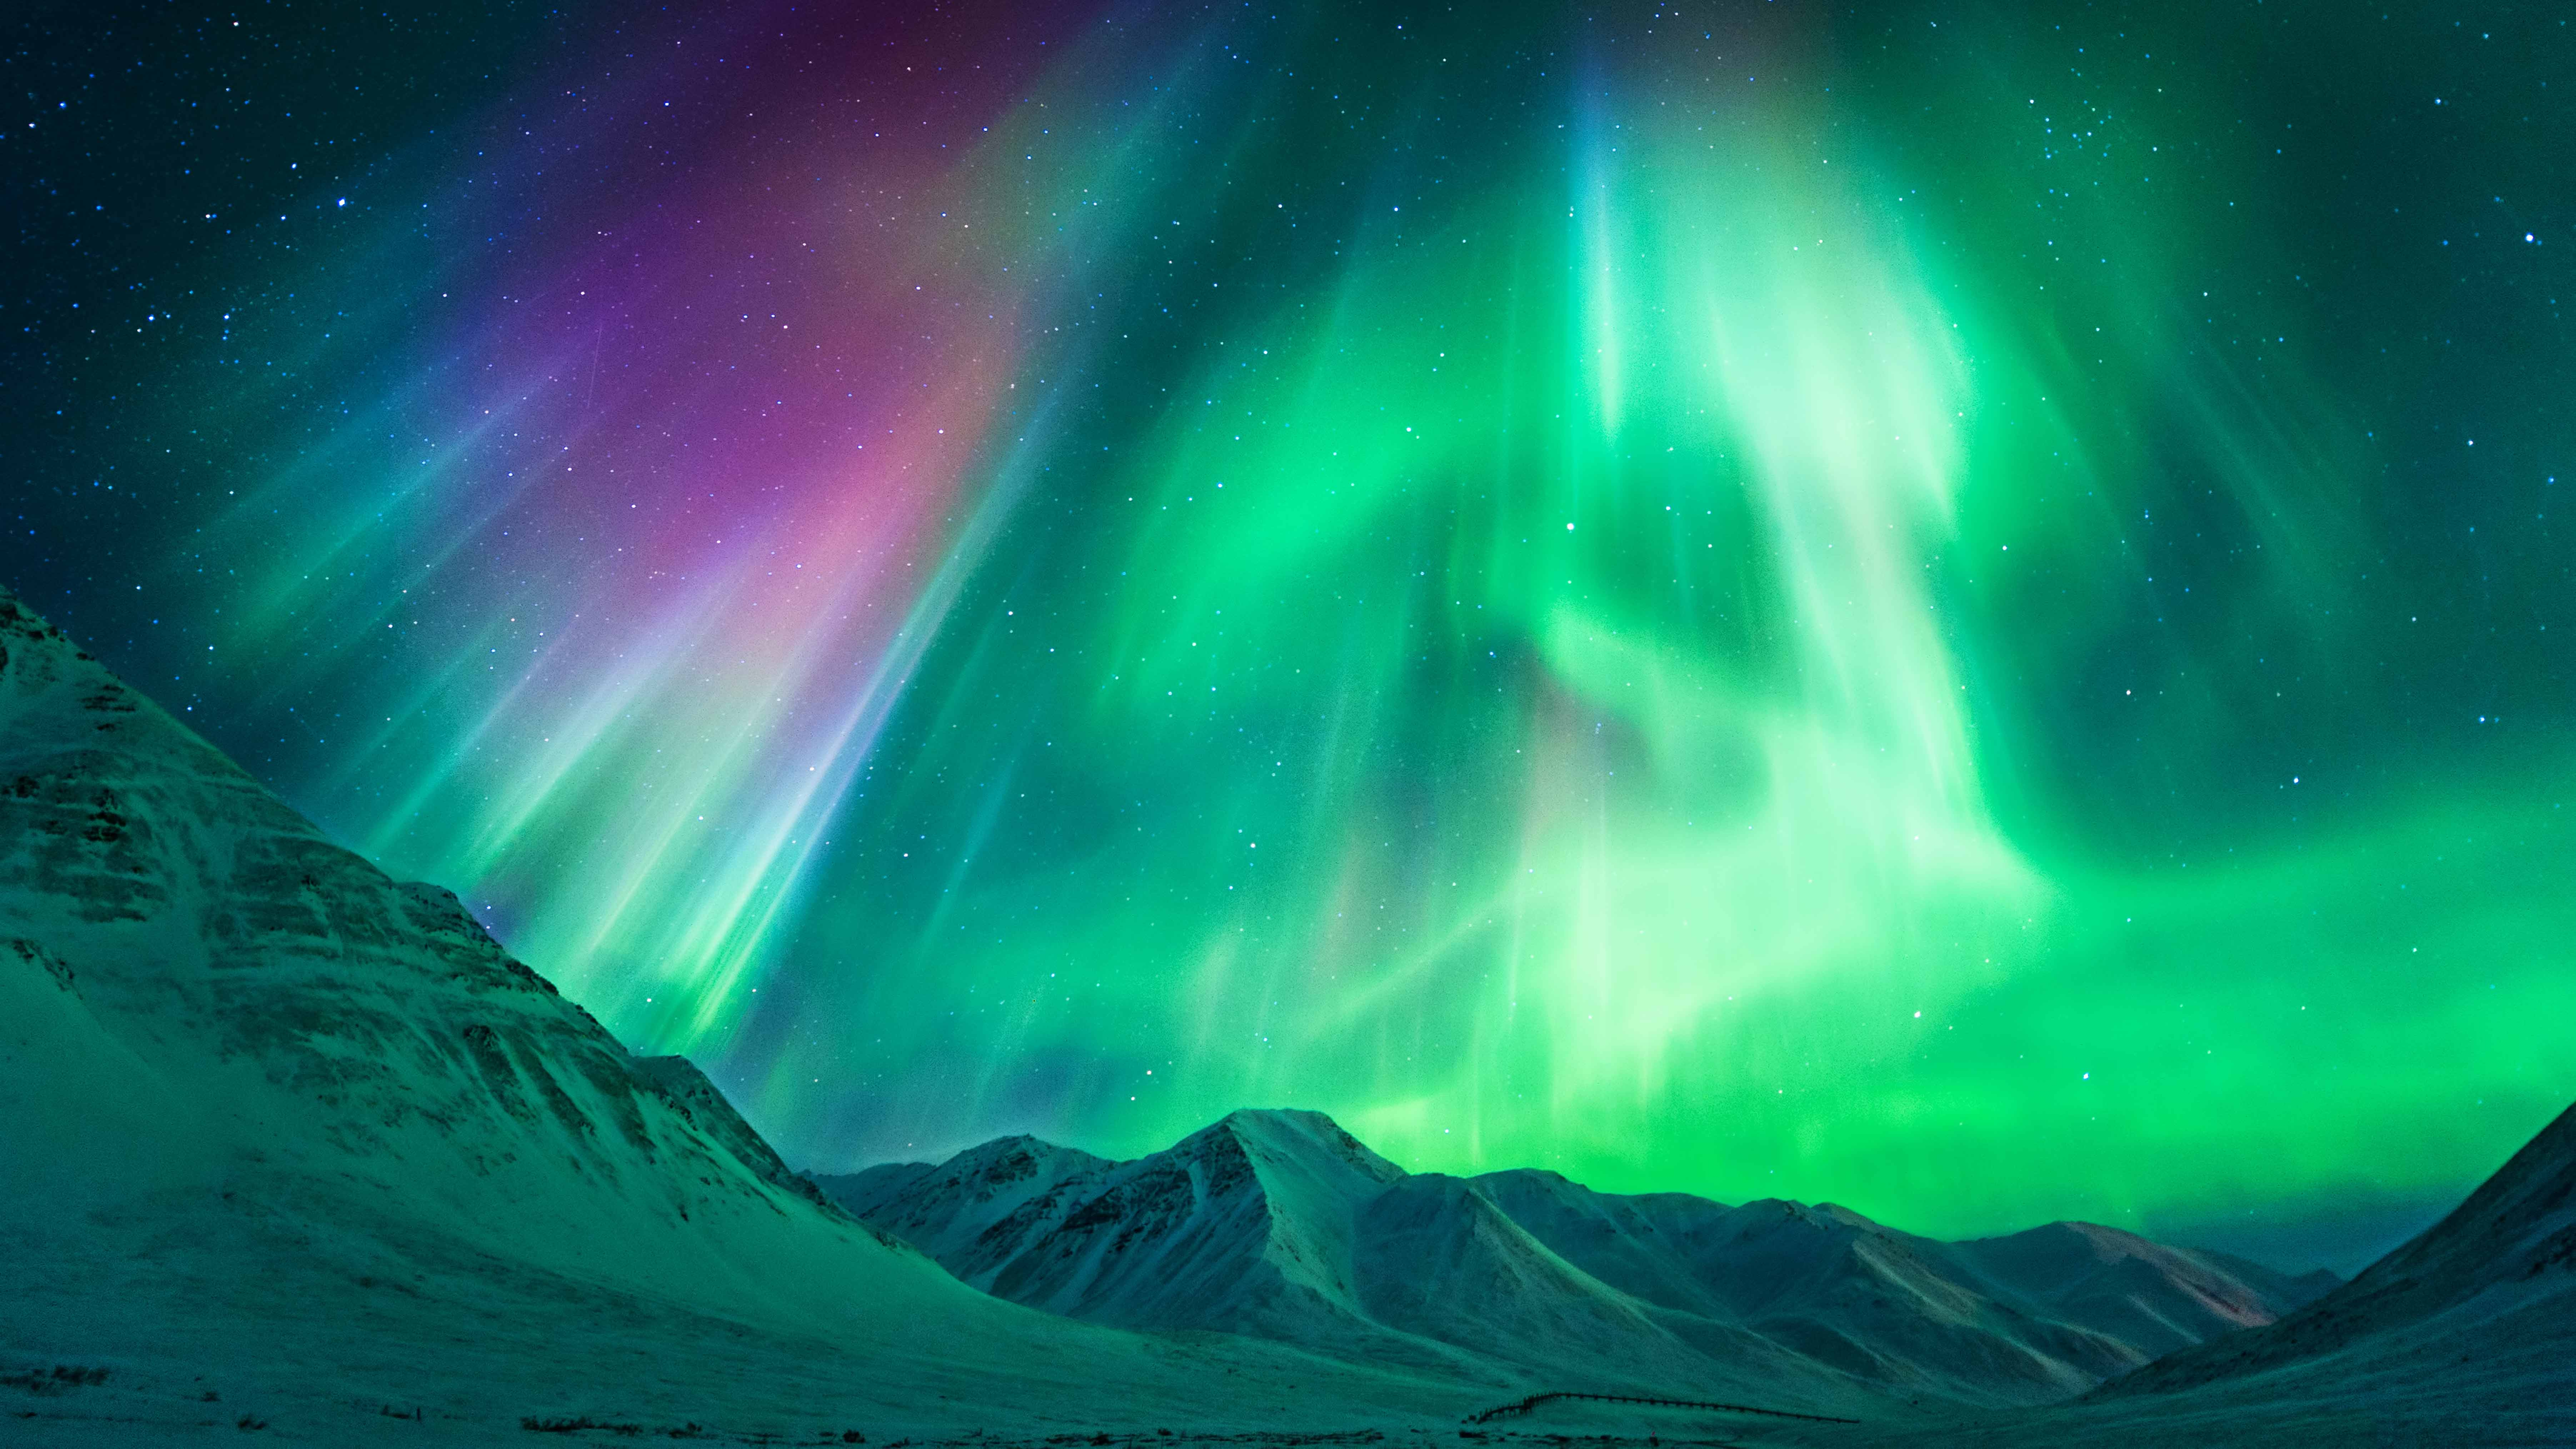 6 of the best places to photograph the Northern Lights in Alaska